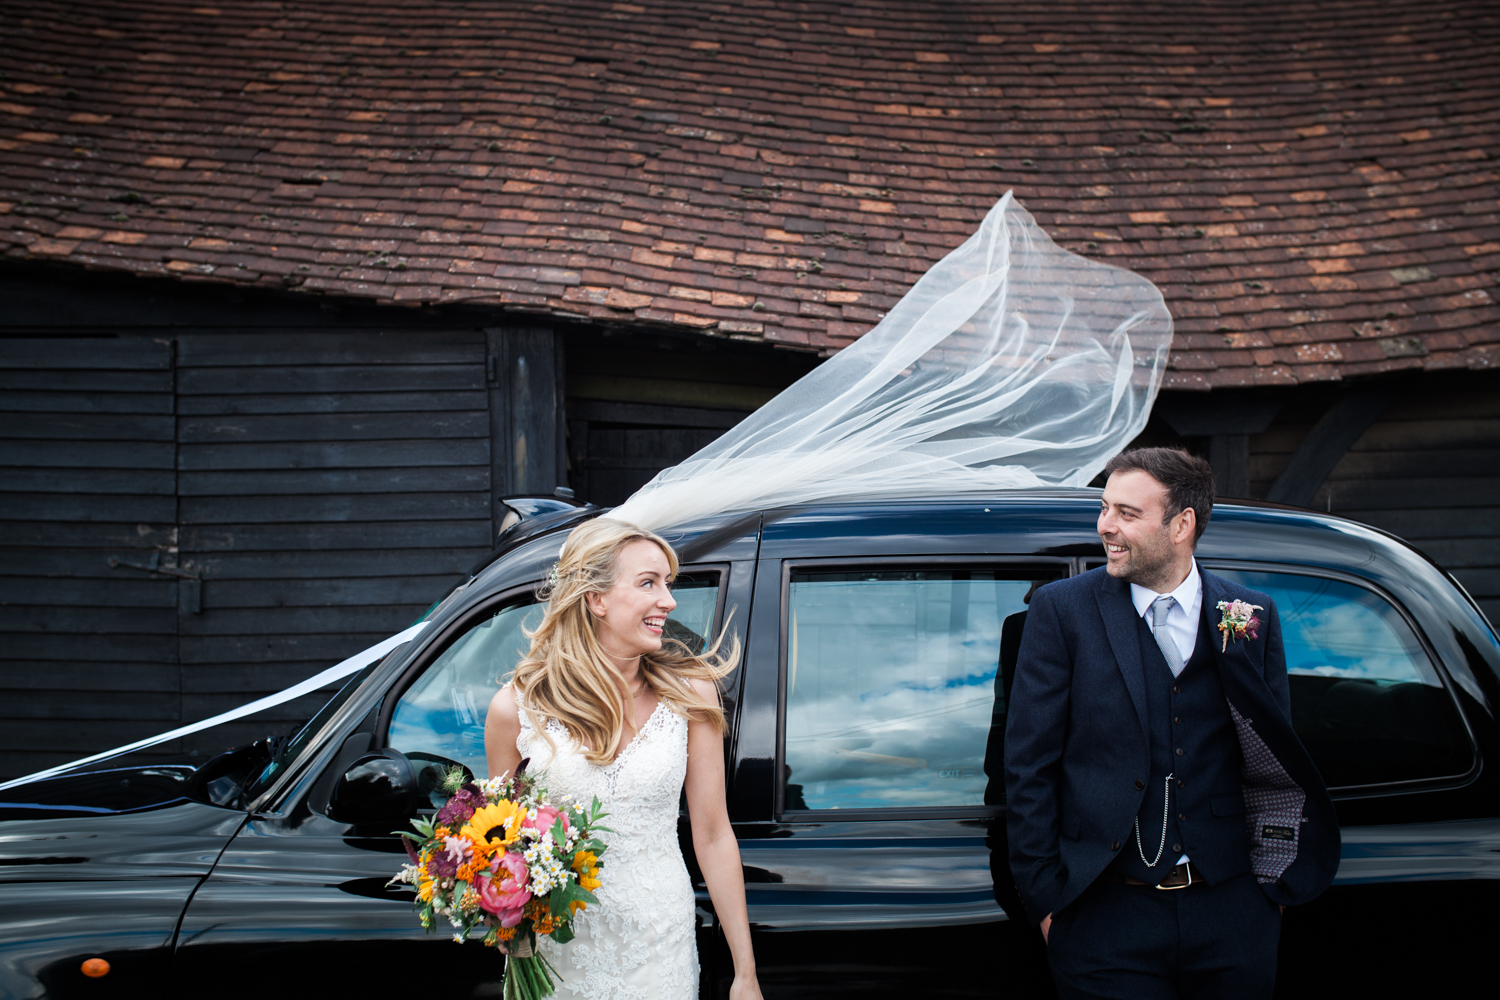 Teepee Wedding at Ashridge Farm, Buckinghamshire